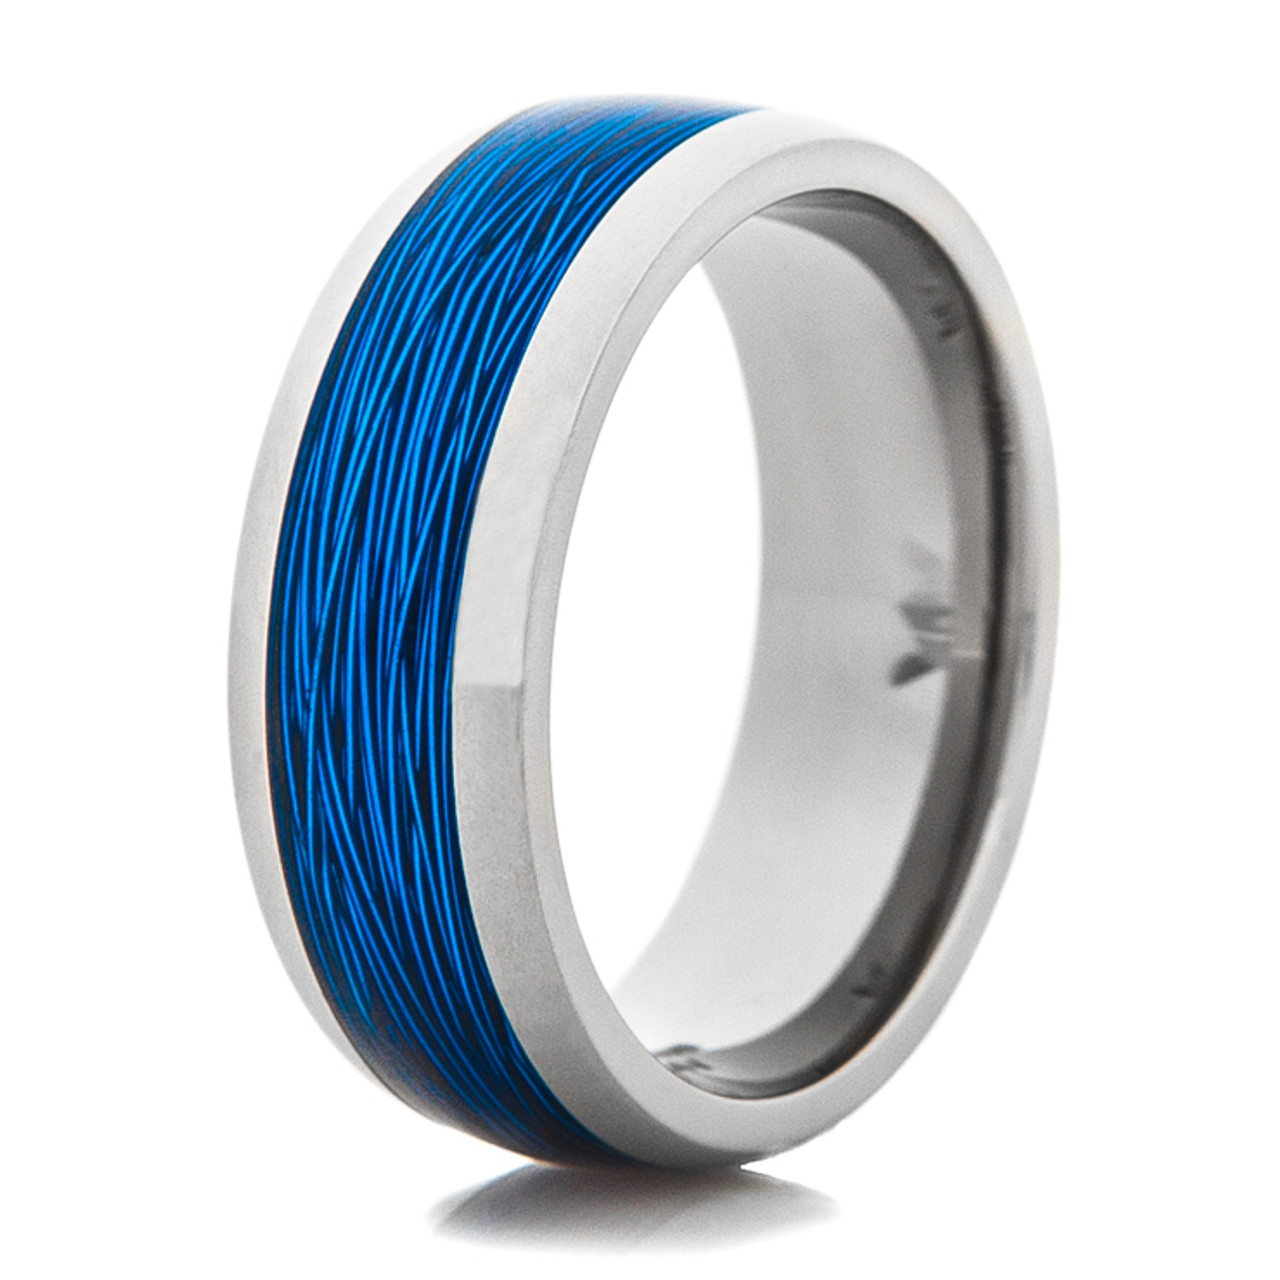 The Angler Products t Rings Tungsten wedding bands